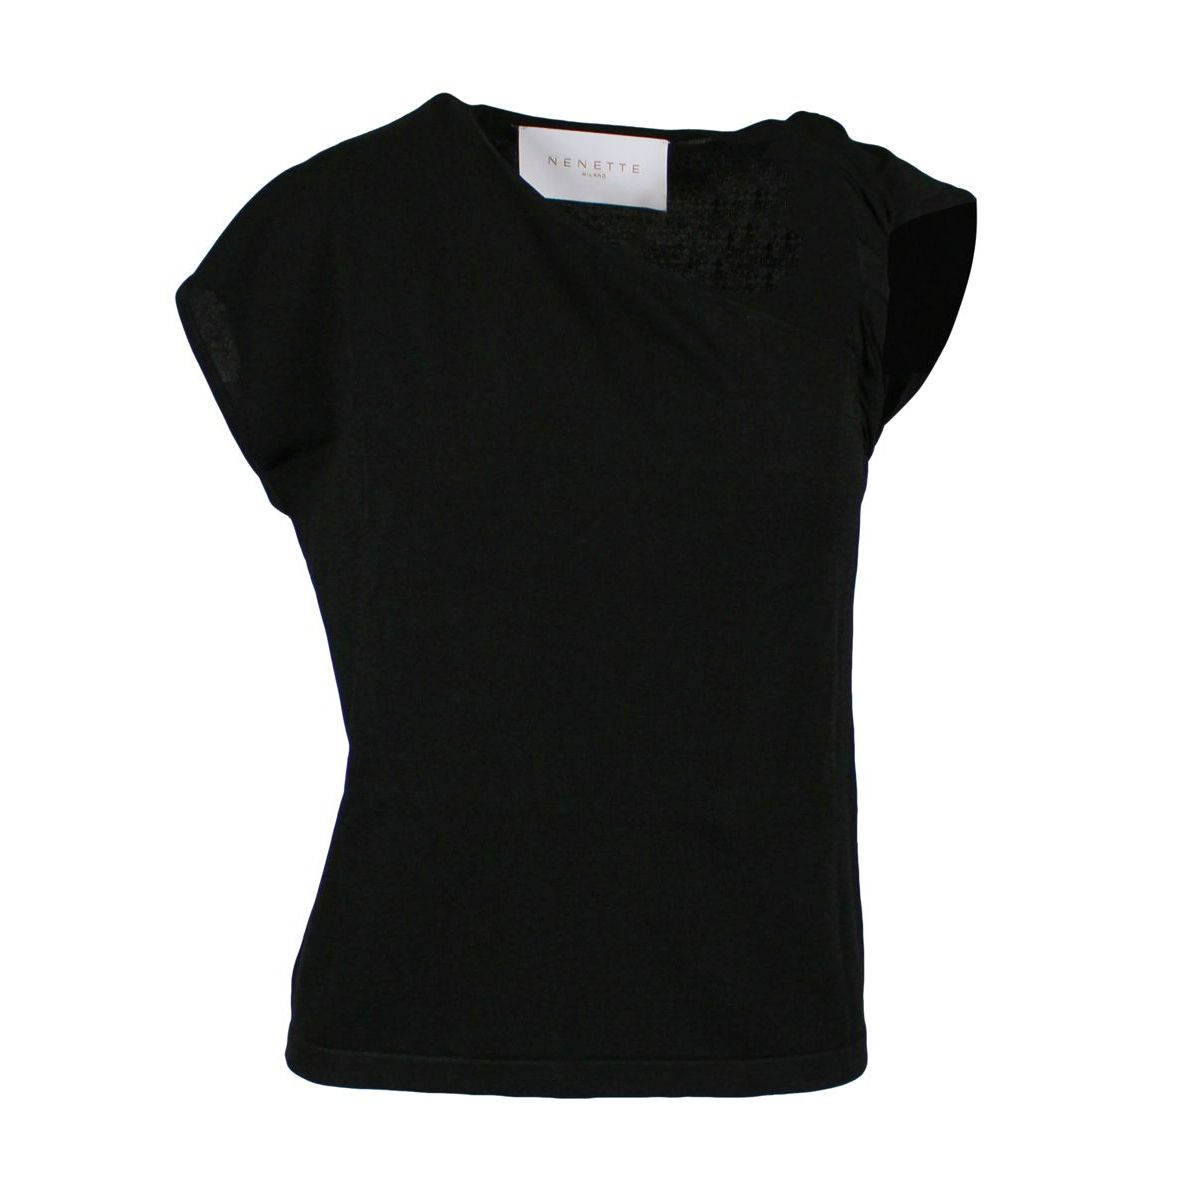 Moo shirt Black NENETTE